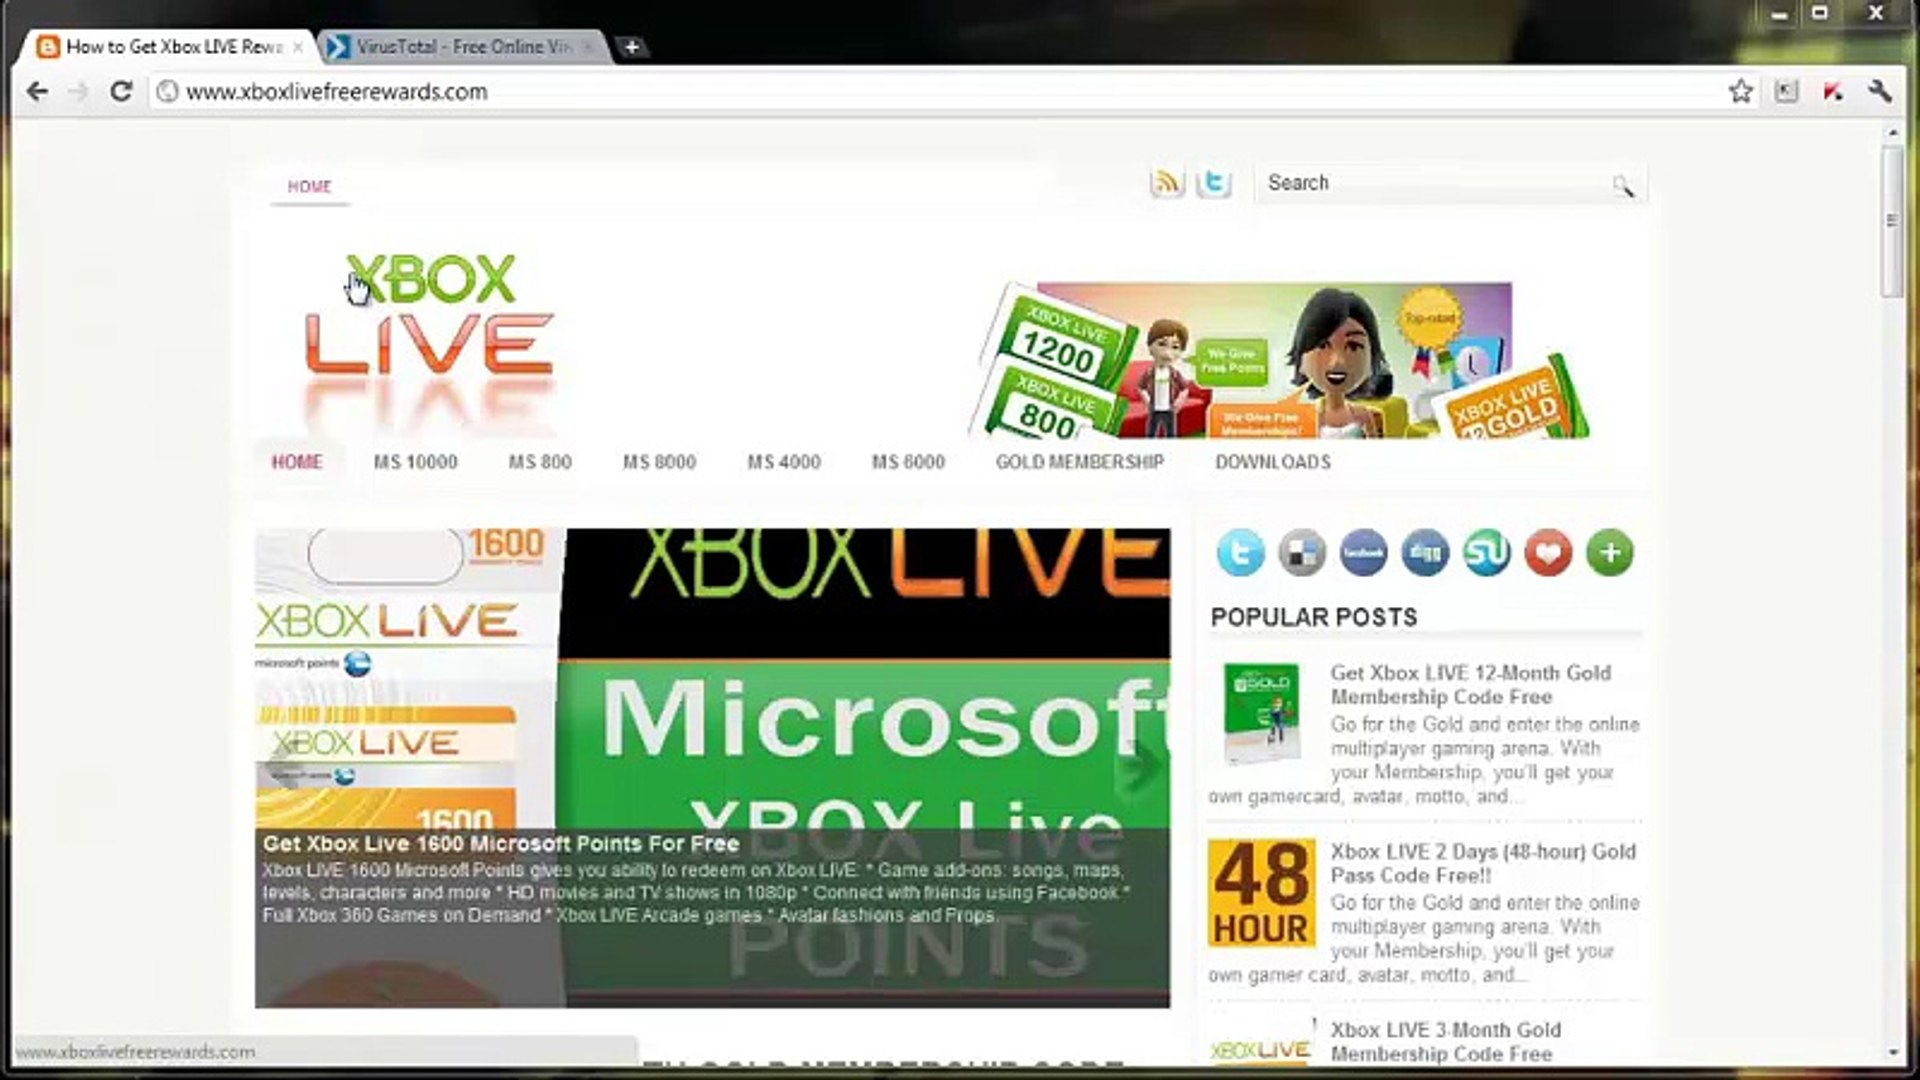 Xbox Live 10,000 Microsoft Points Redeem Code Download